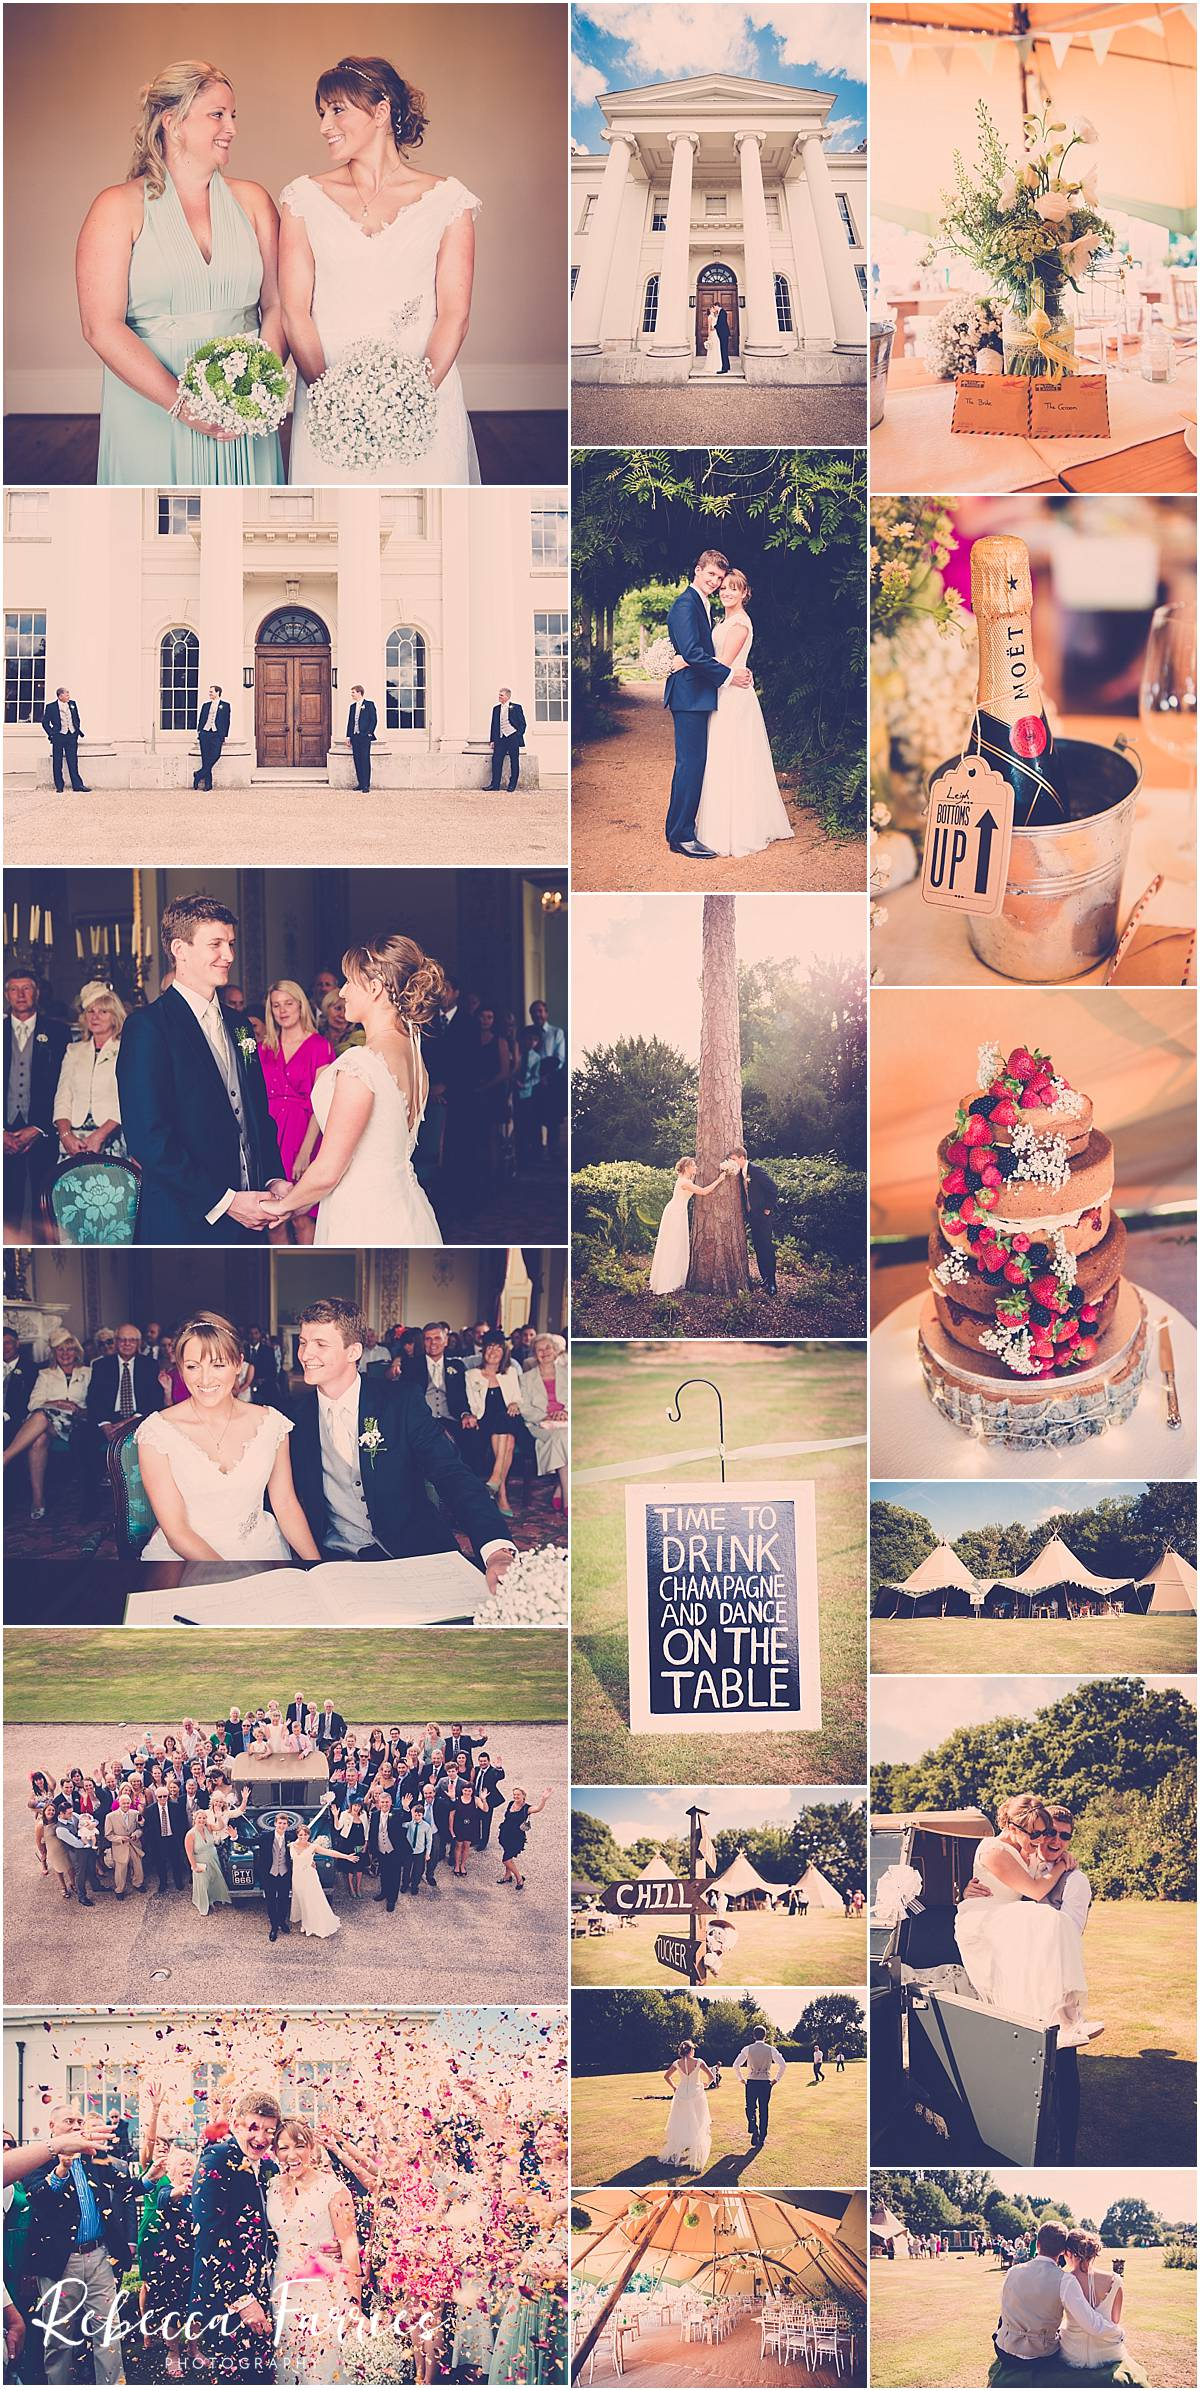 Collage of images from a wedding at Hylands House in Essex